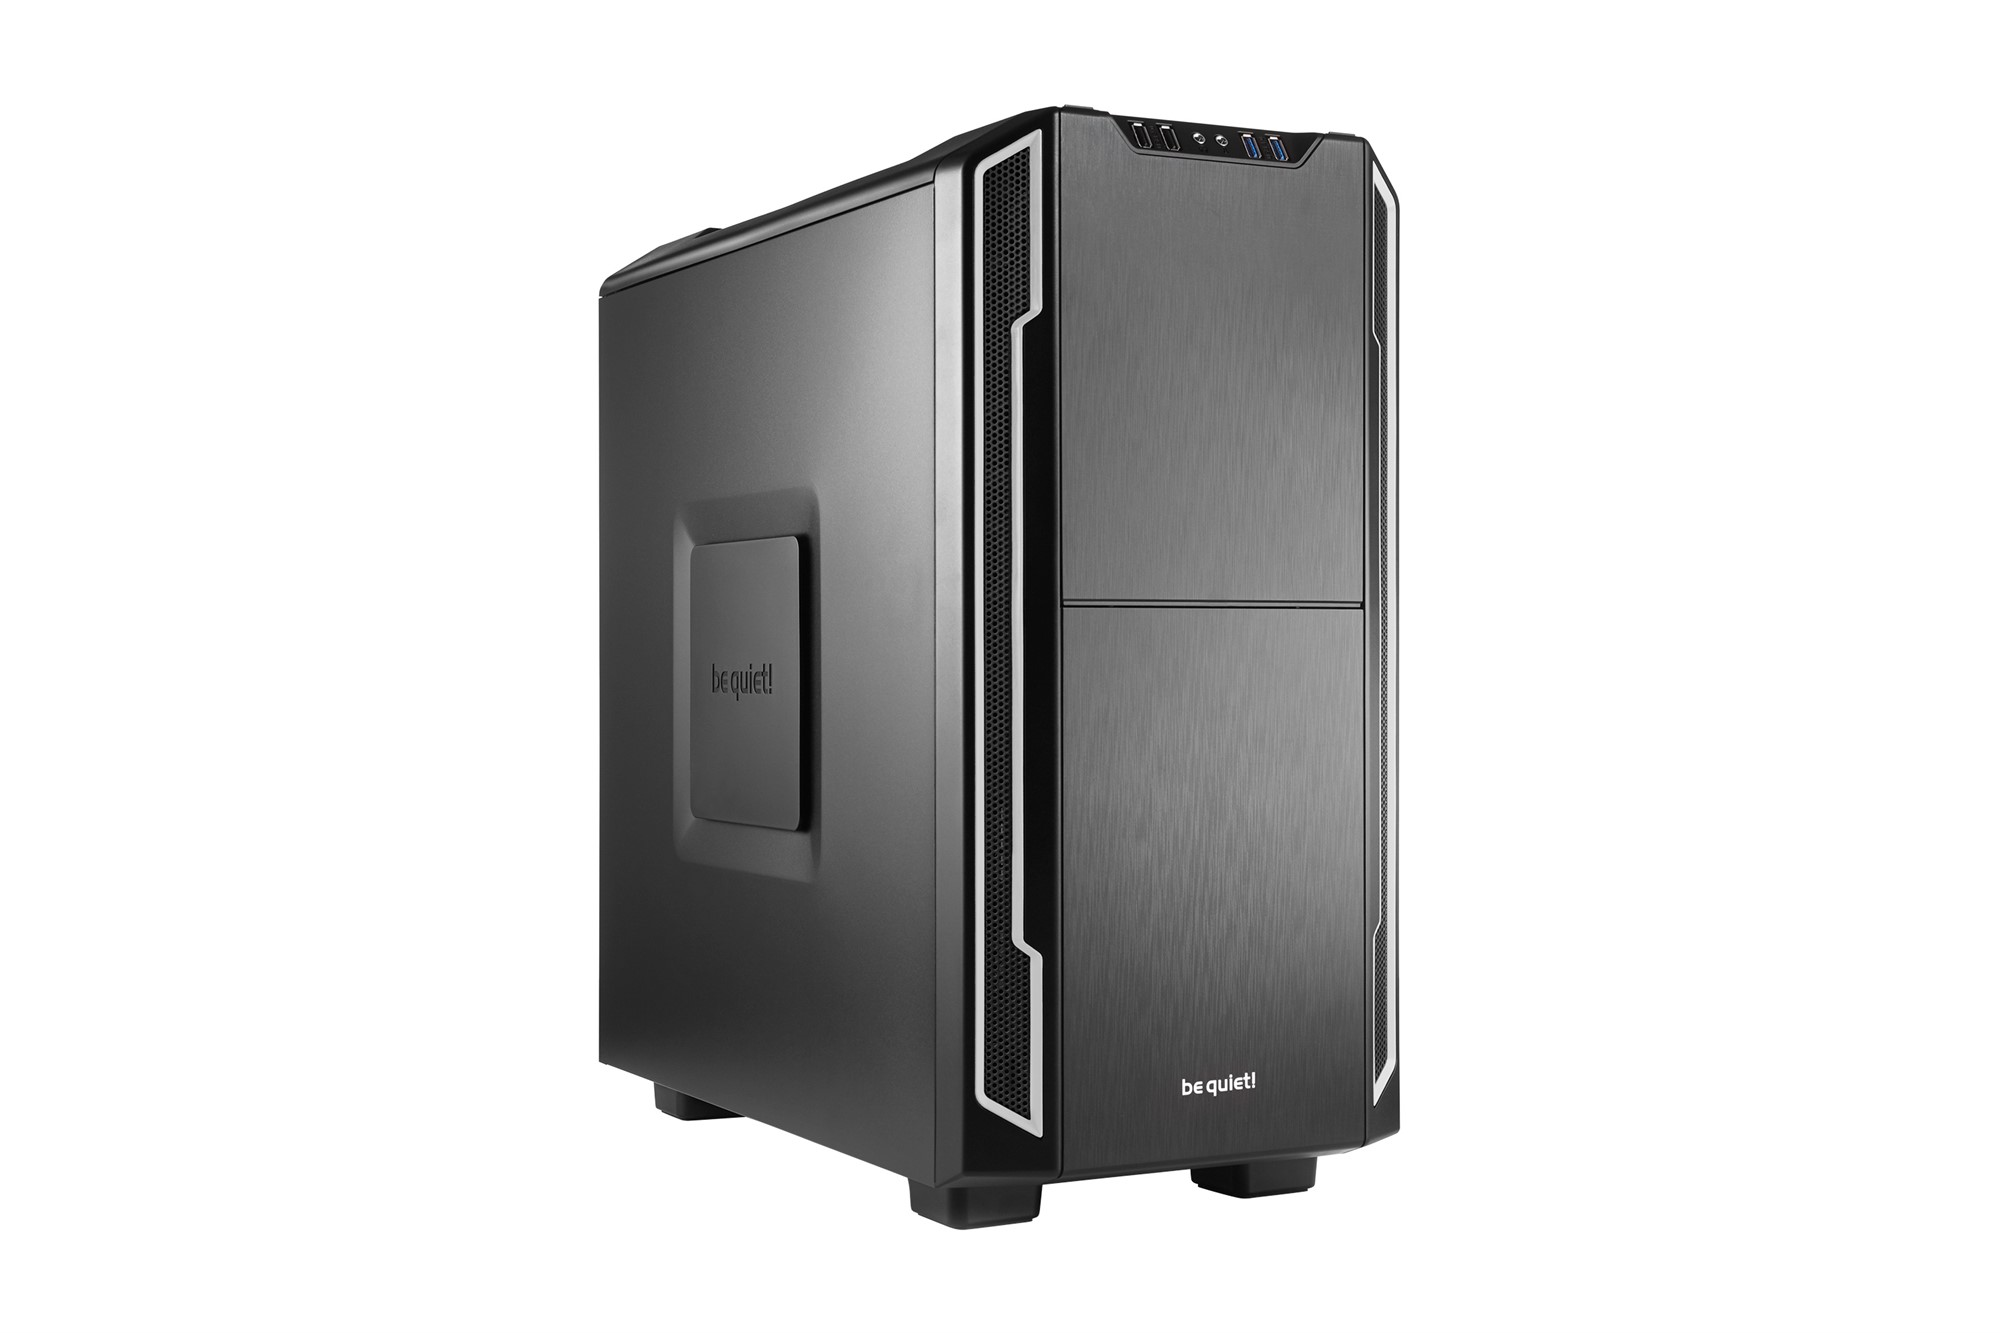 BE QUIET! BG007 SILENT BASE 600 DESKTOP BLACK,SILVER COMPUTER CASE